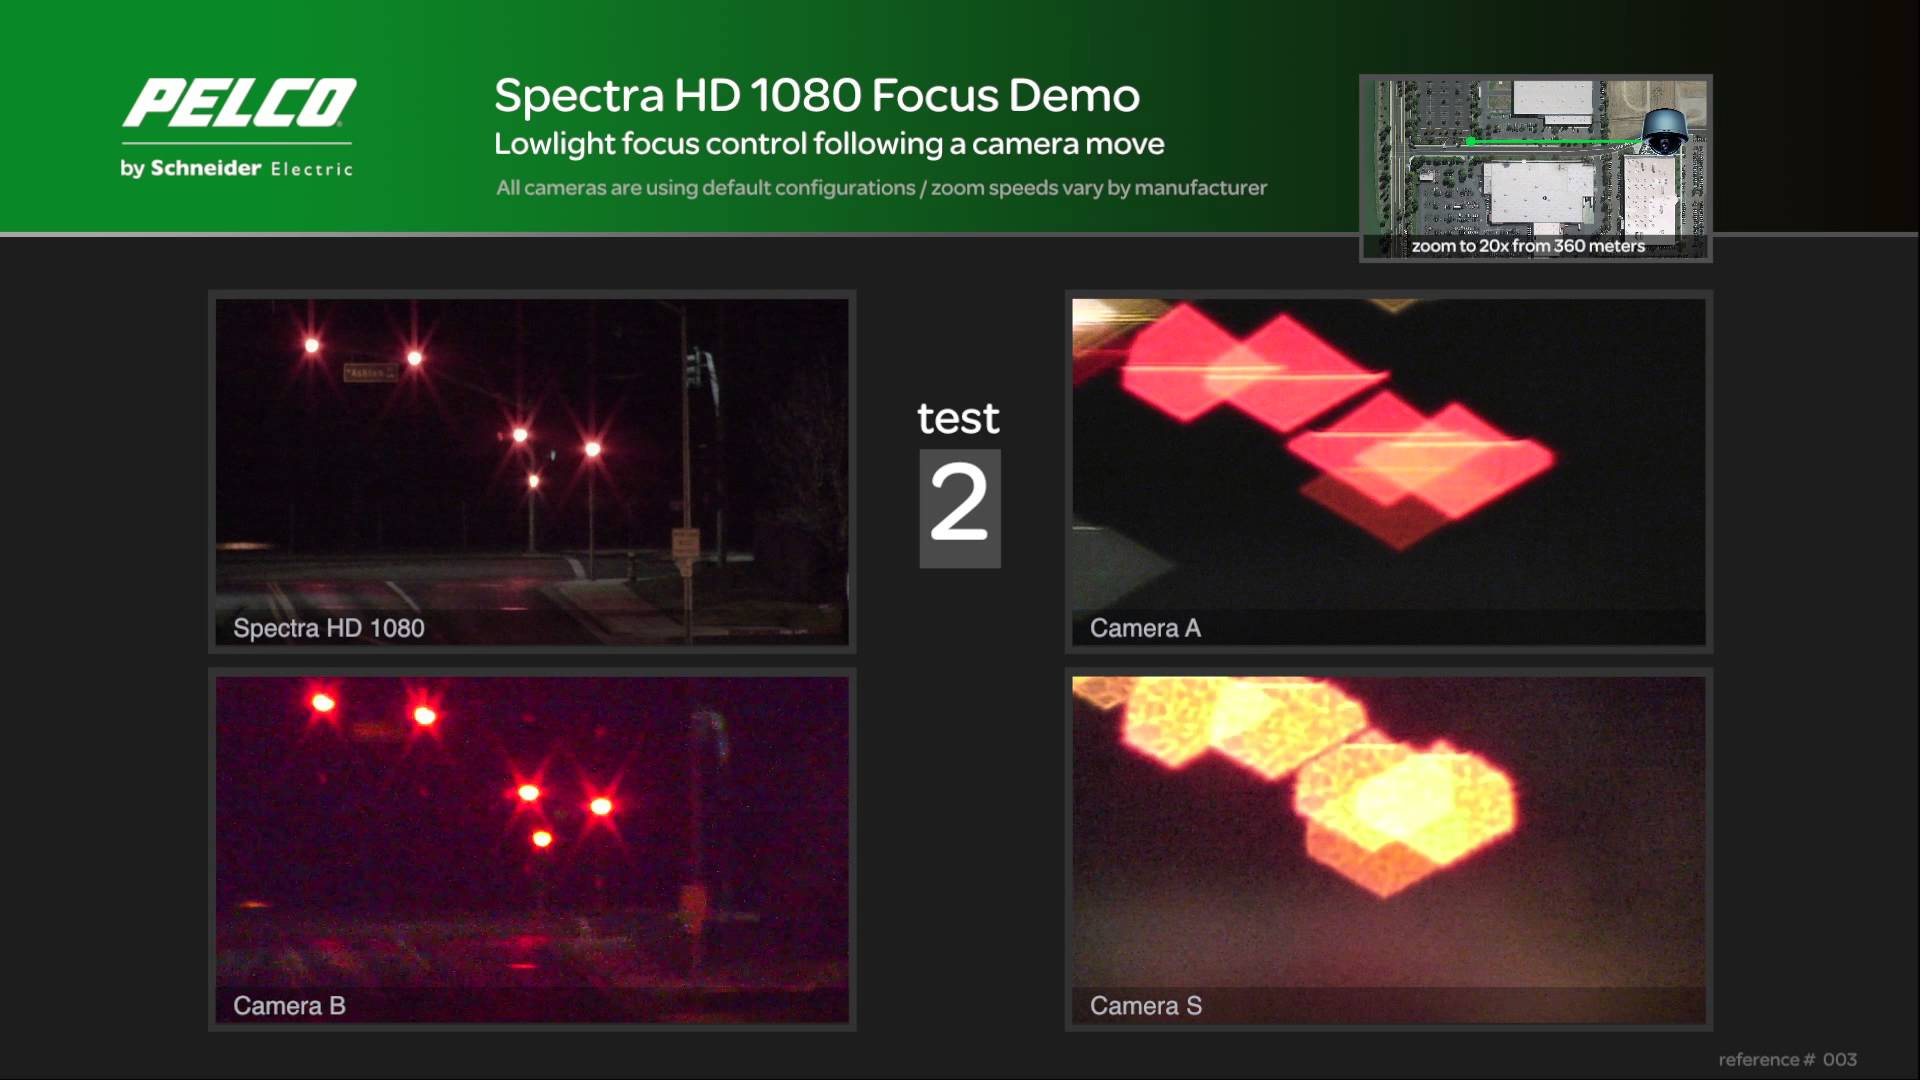 Focus: Spectra HD 1080 vs. Competitive Cameras